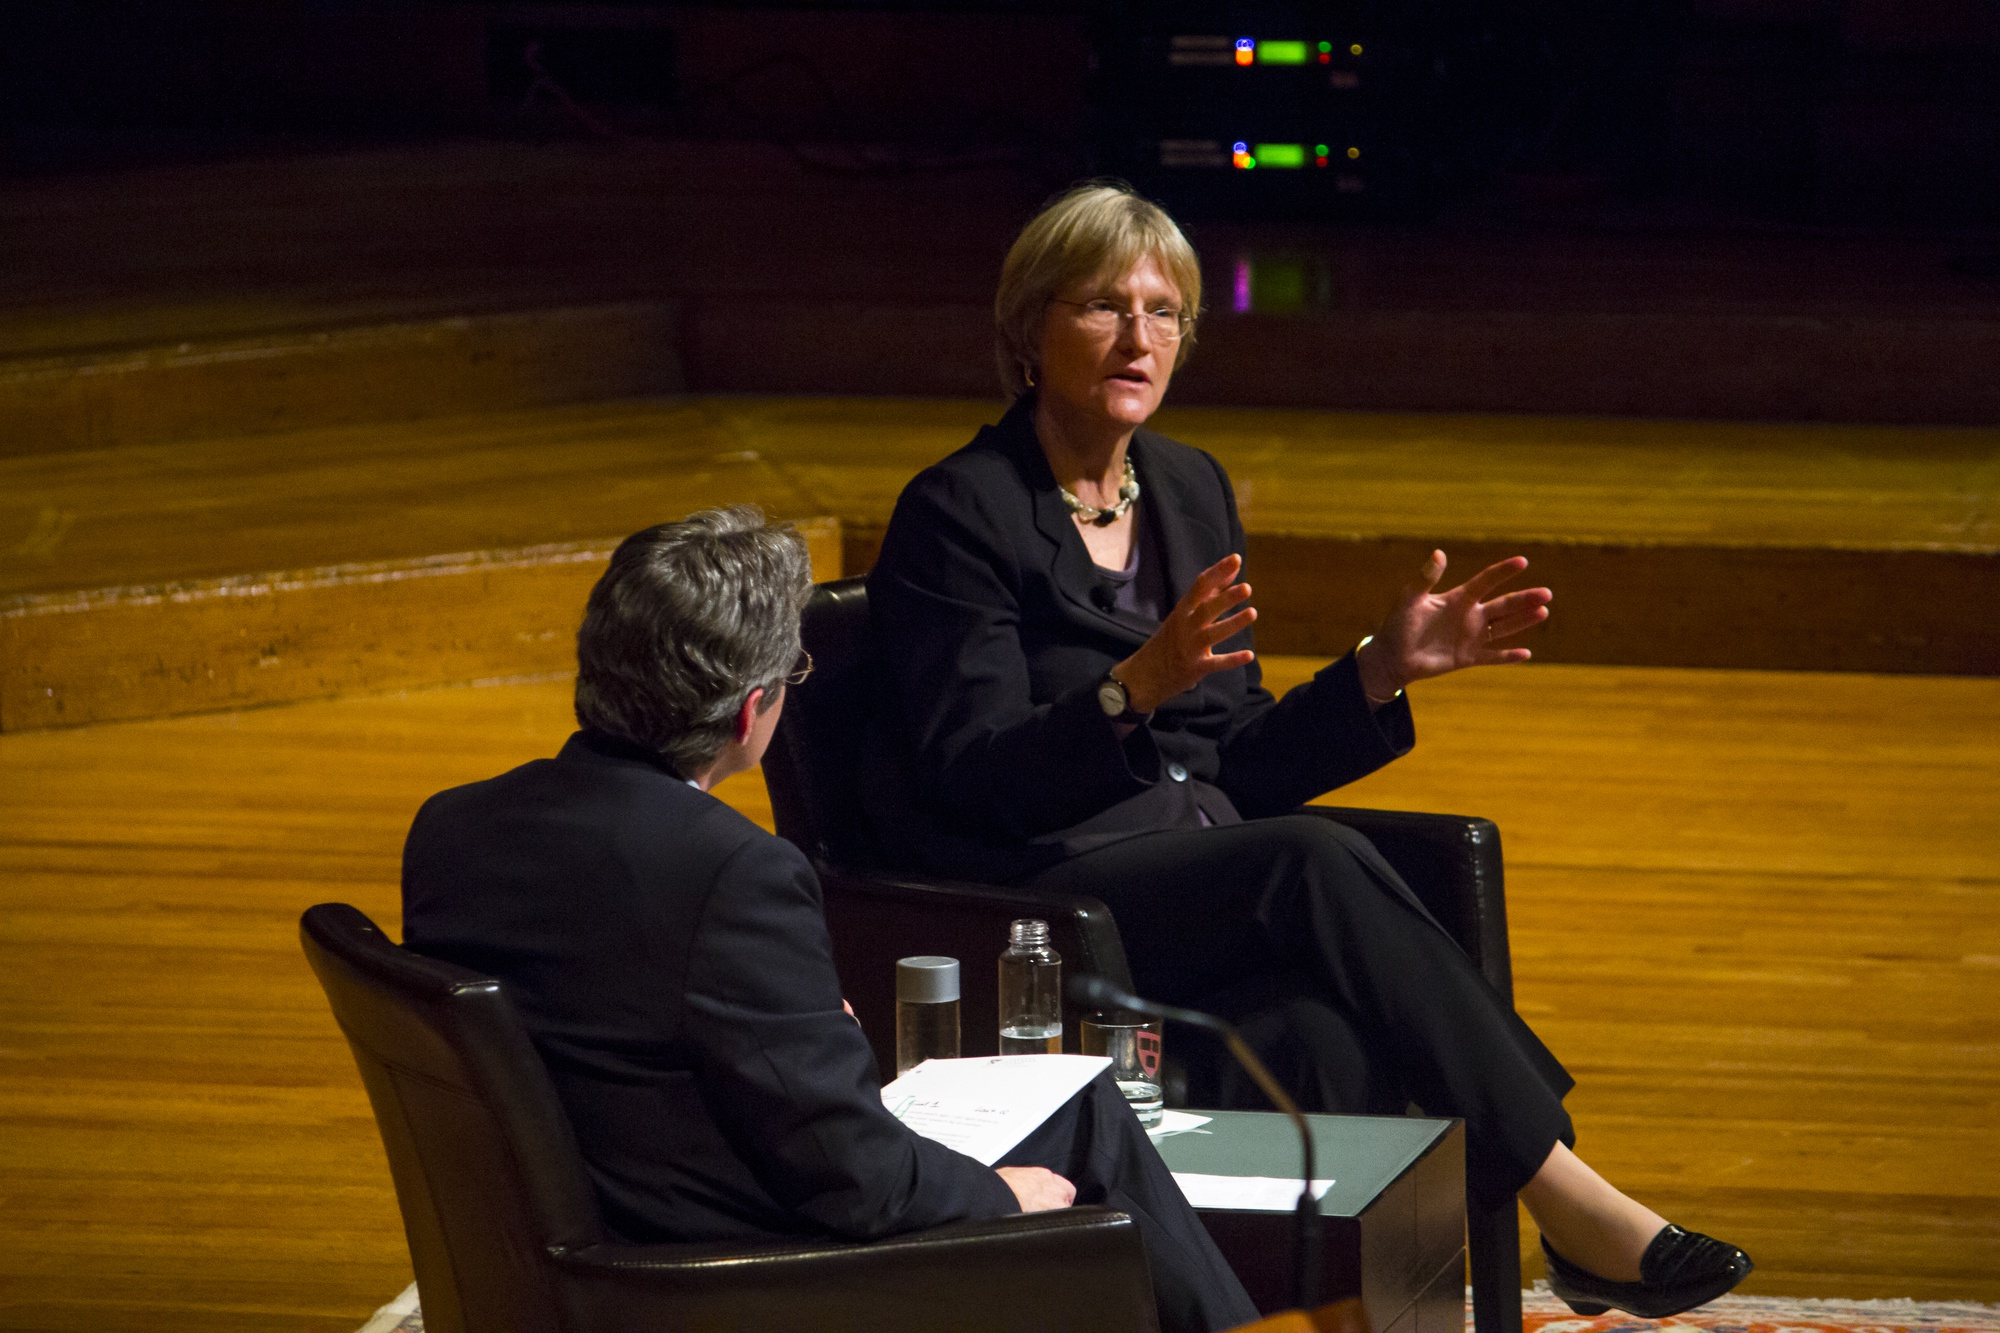 University President Drew G. Faust talks about the state of the University in September 2013 and what the upcoming Harvard Campaign to raise funds can achieve.